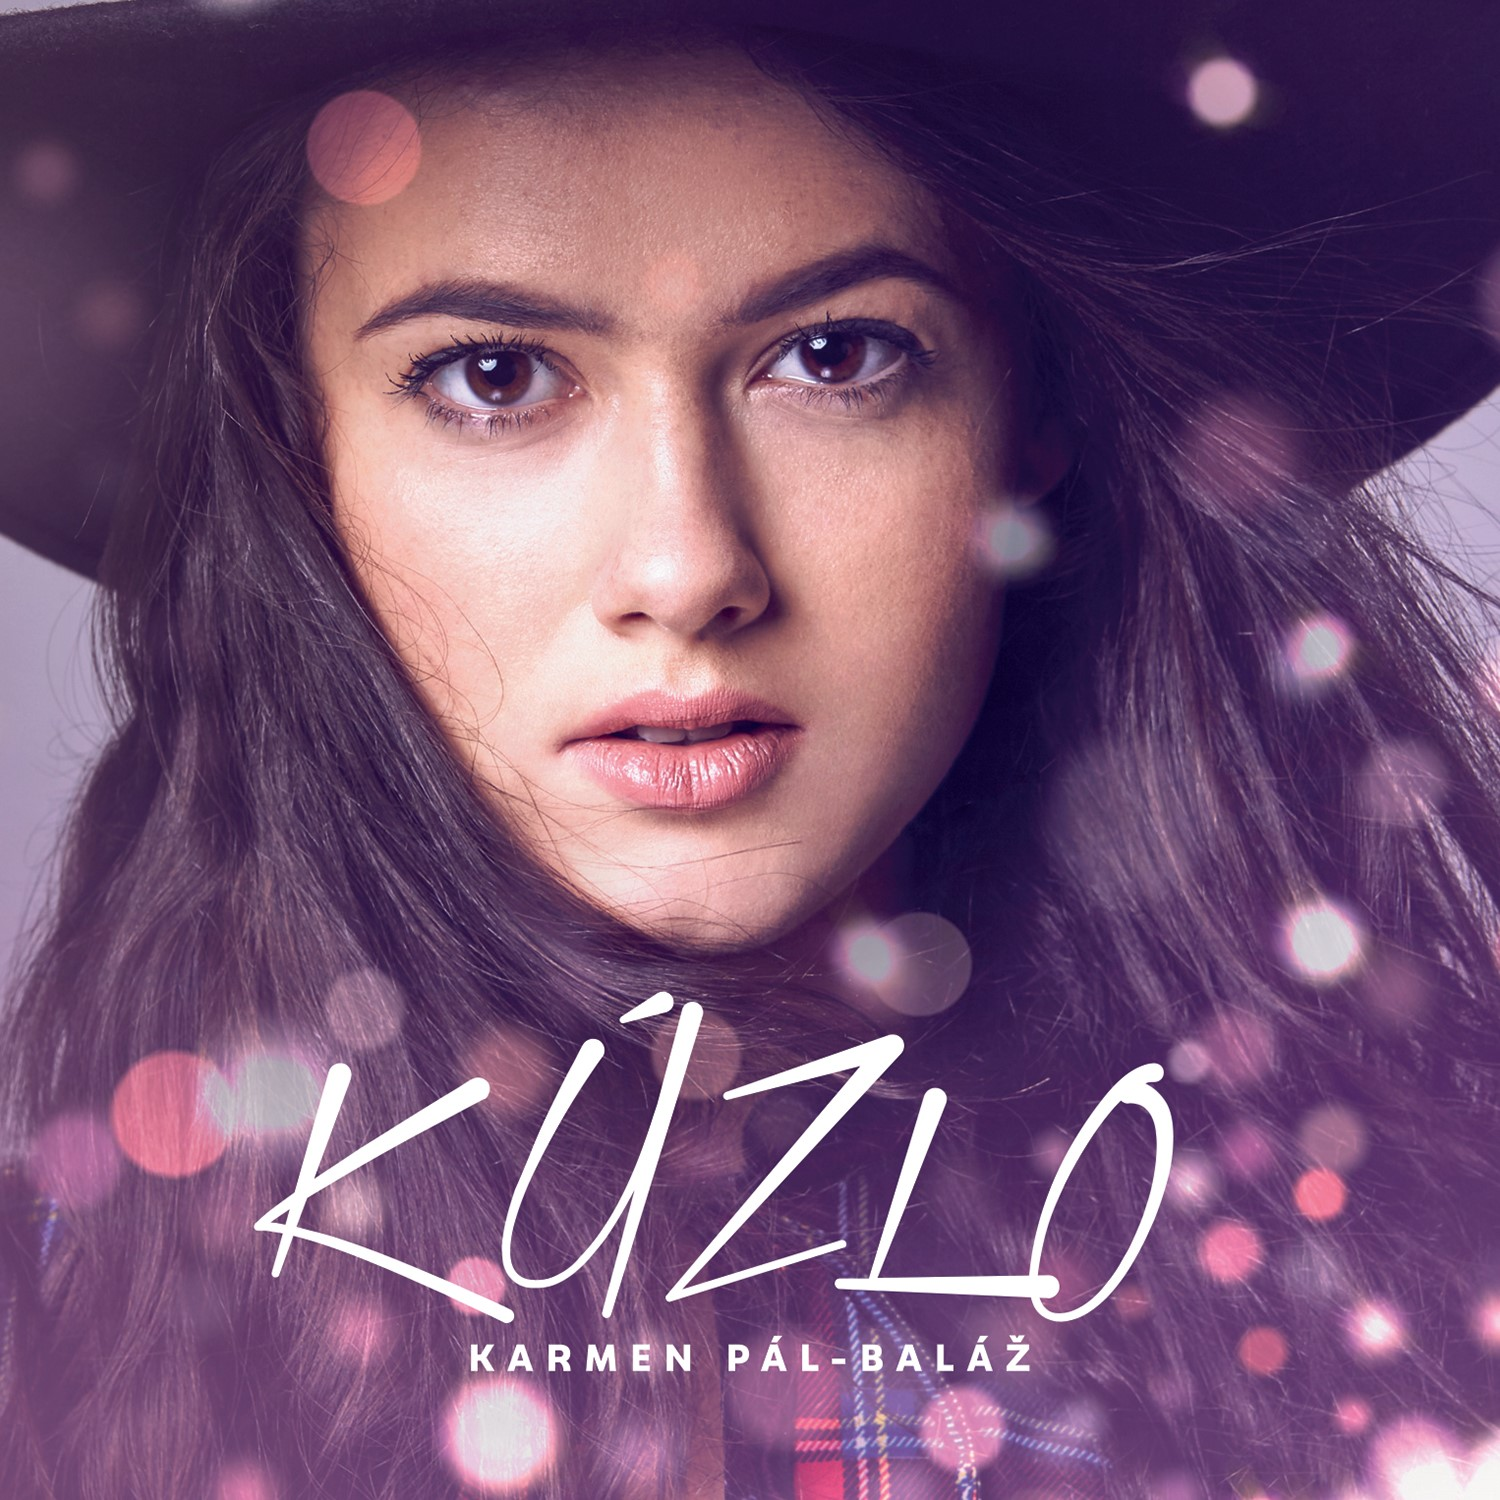 CD Shop - BALAZ KARMEN PAL KUZLO